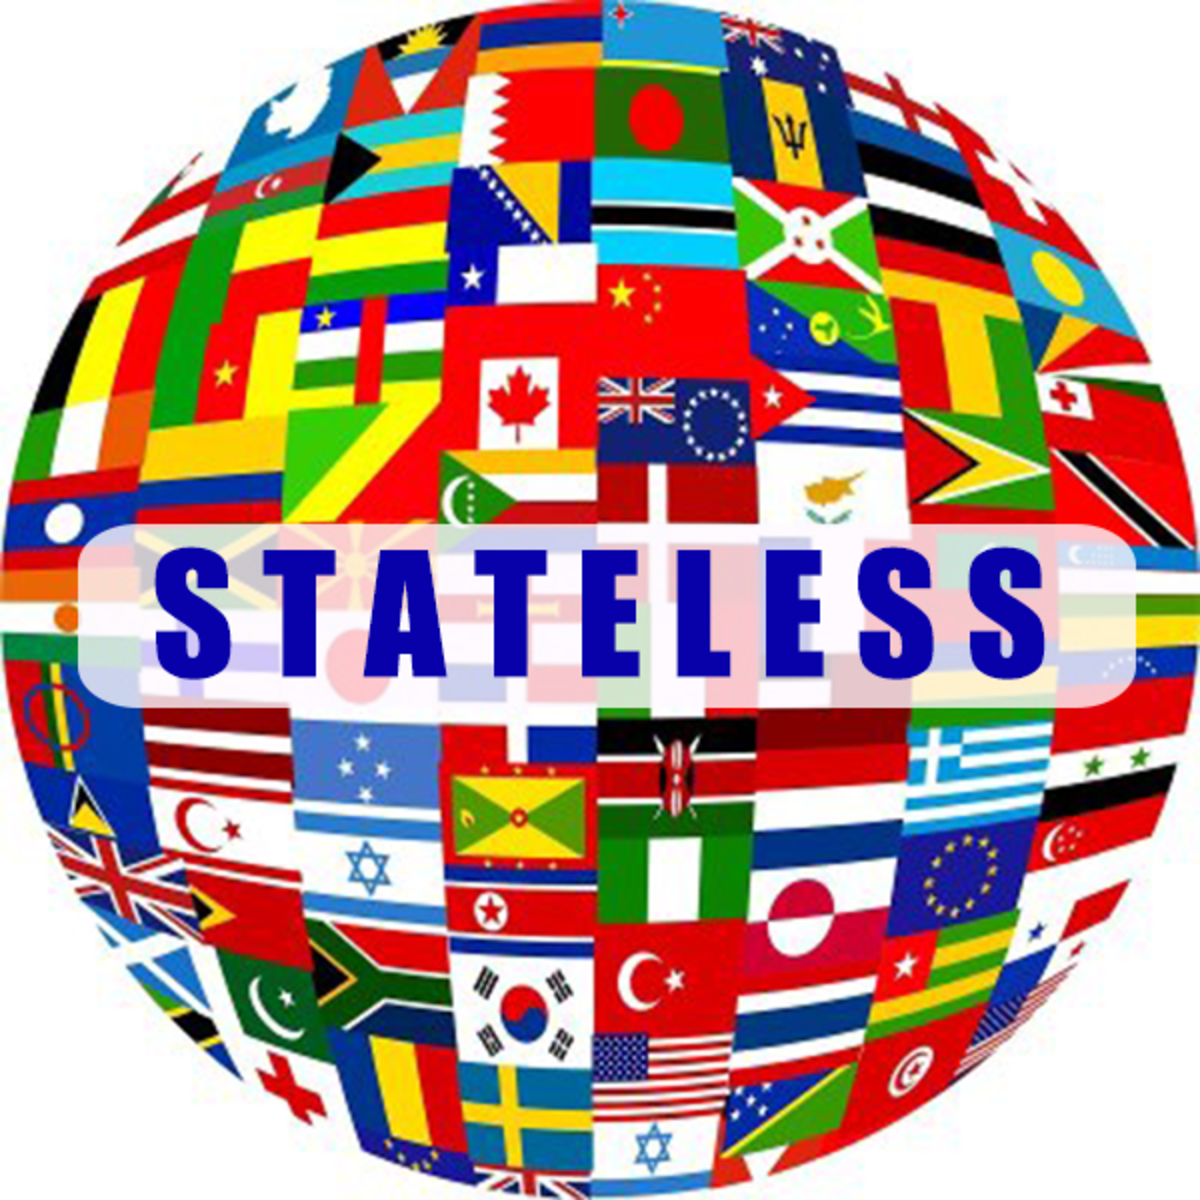 To Be Stateless - What Is It Like?